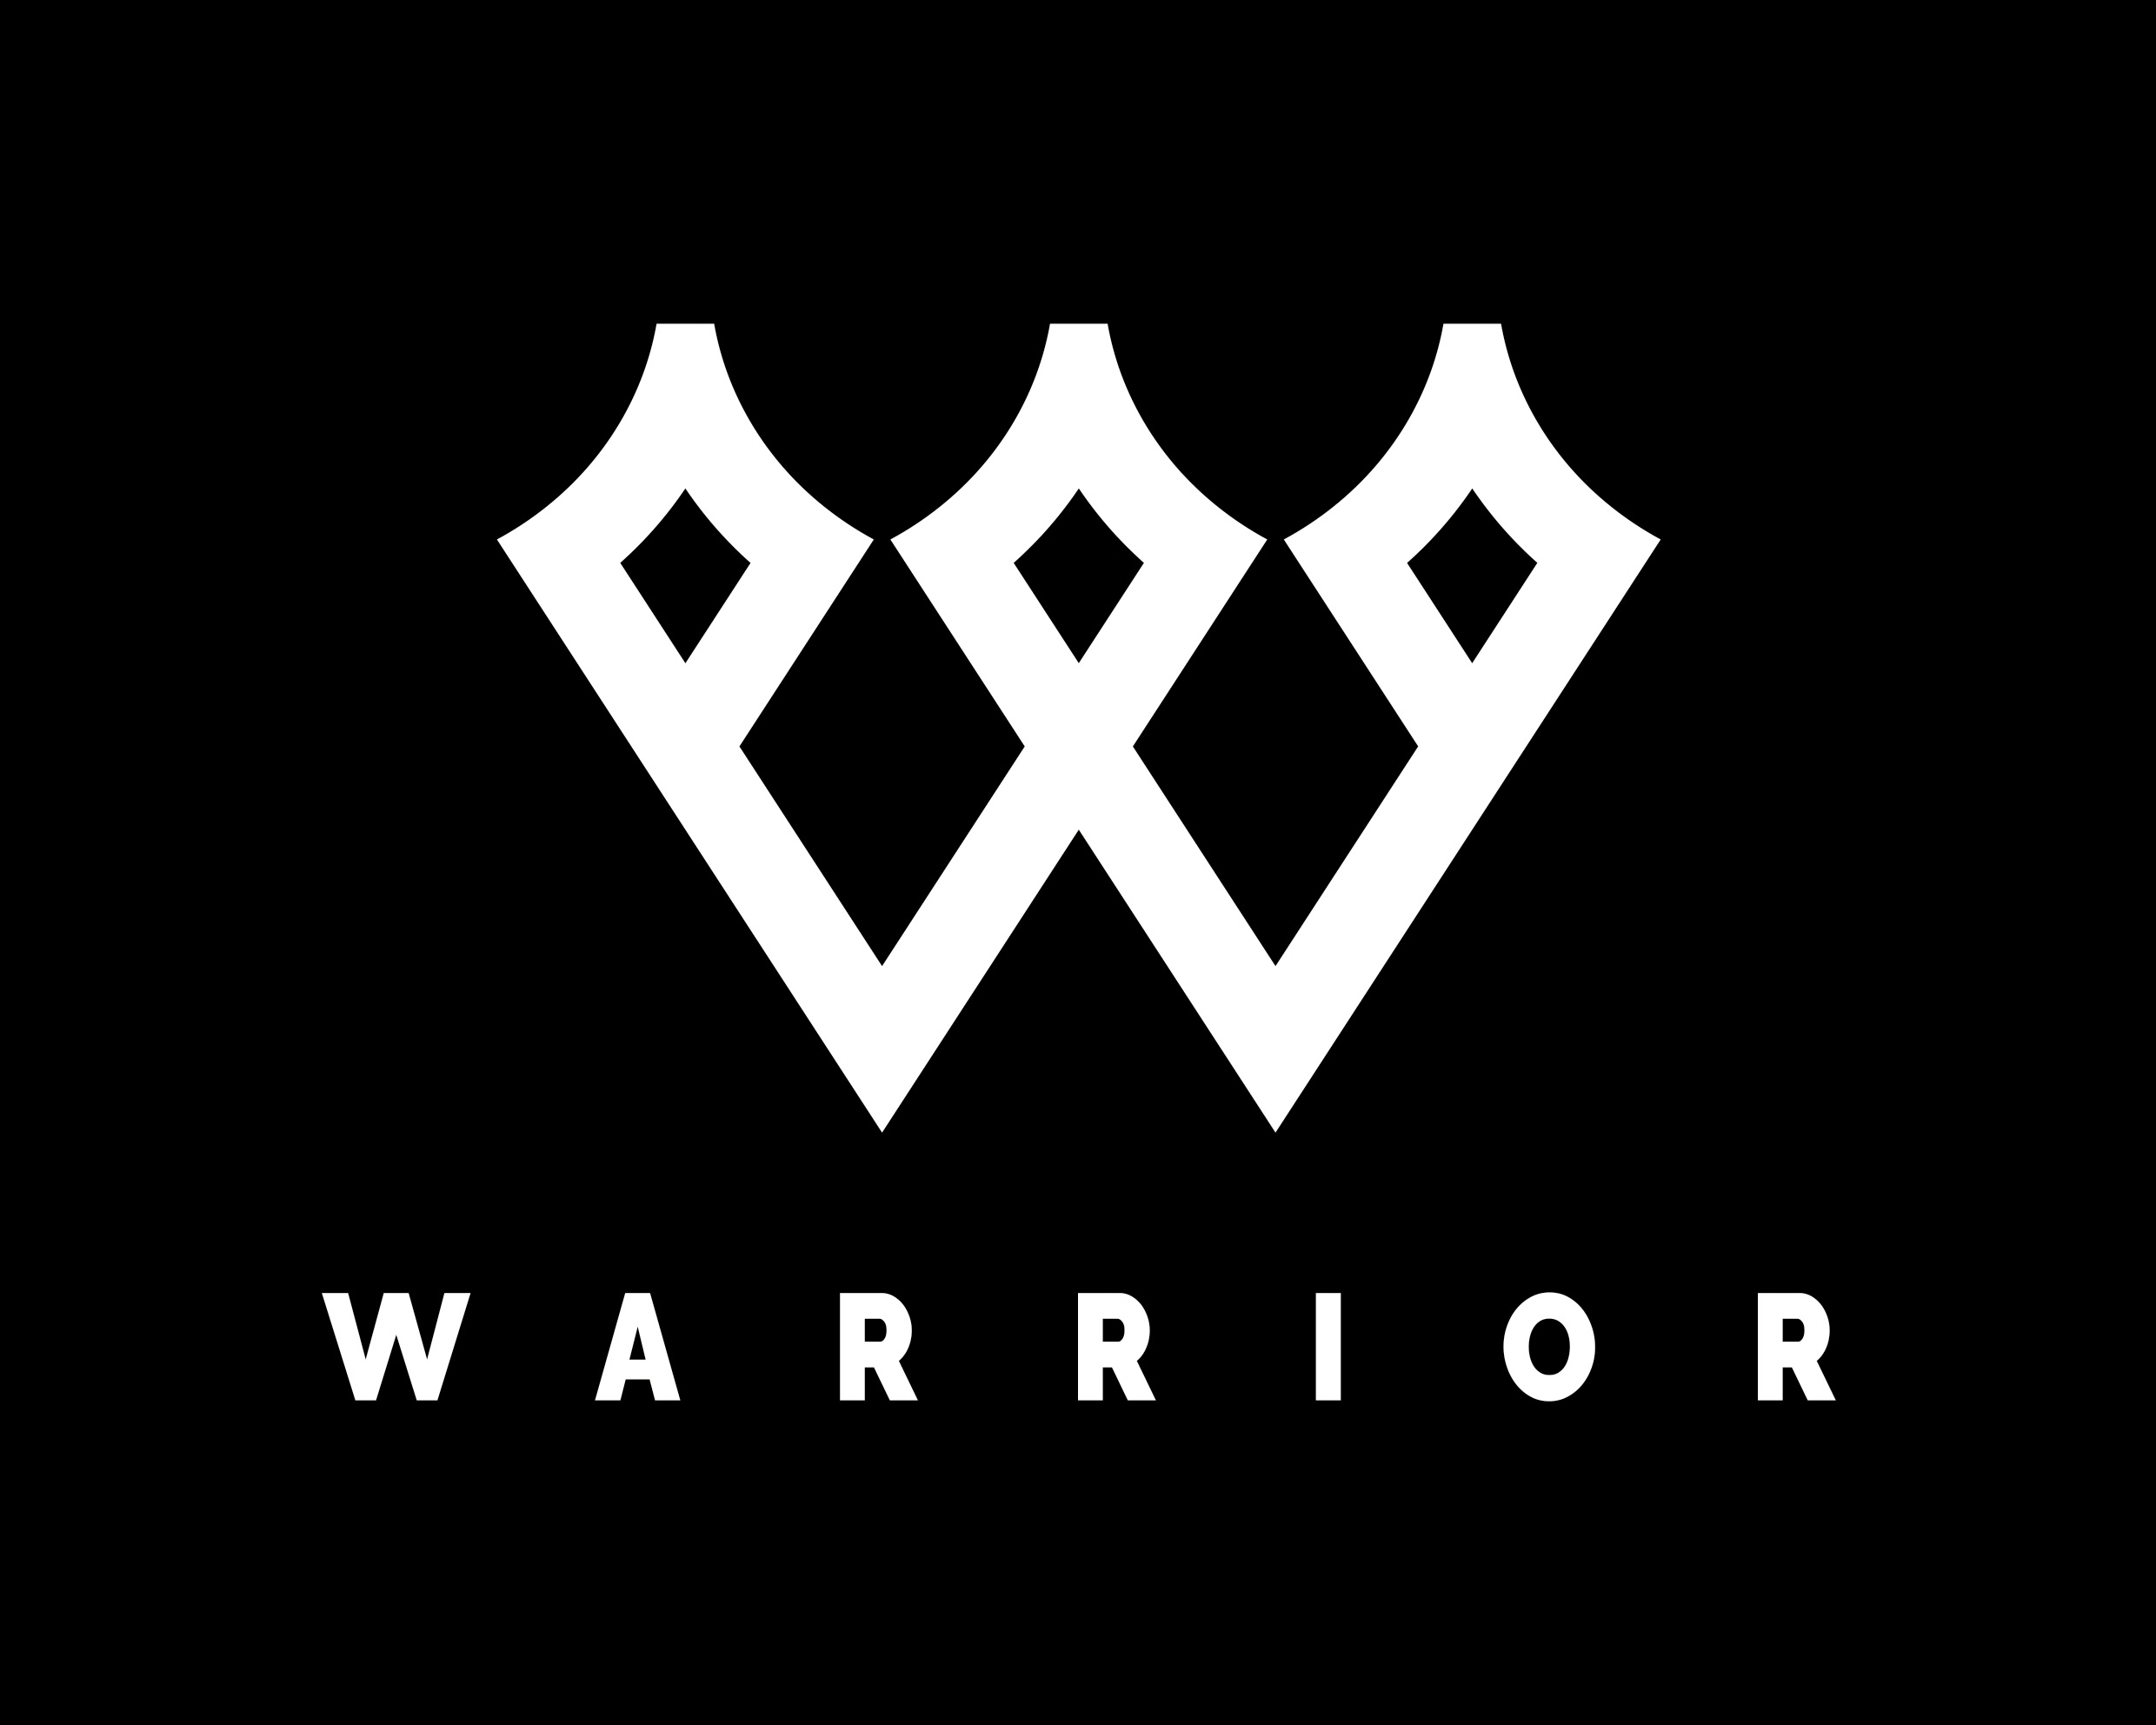 WARRIOR-logo-square-black-web.jpg